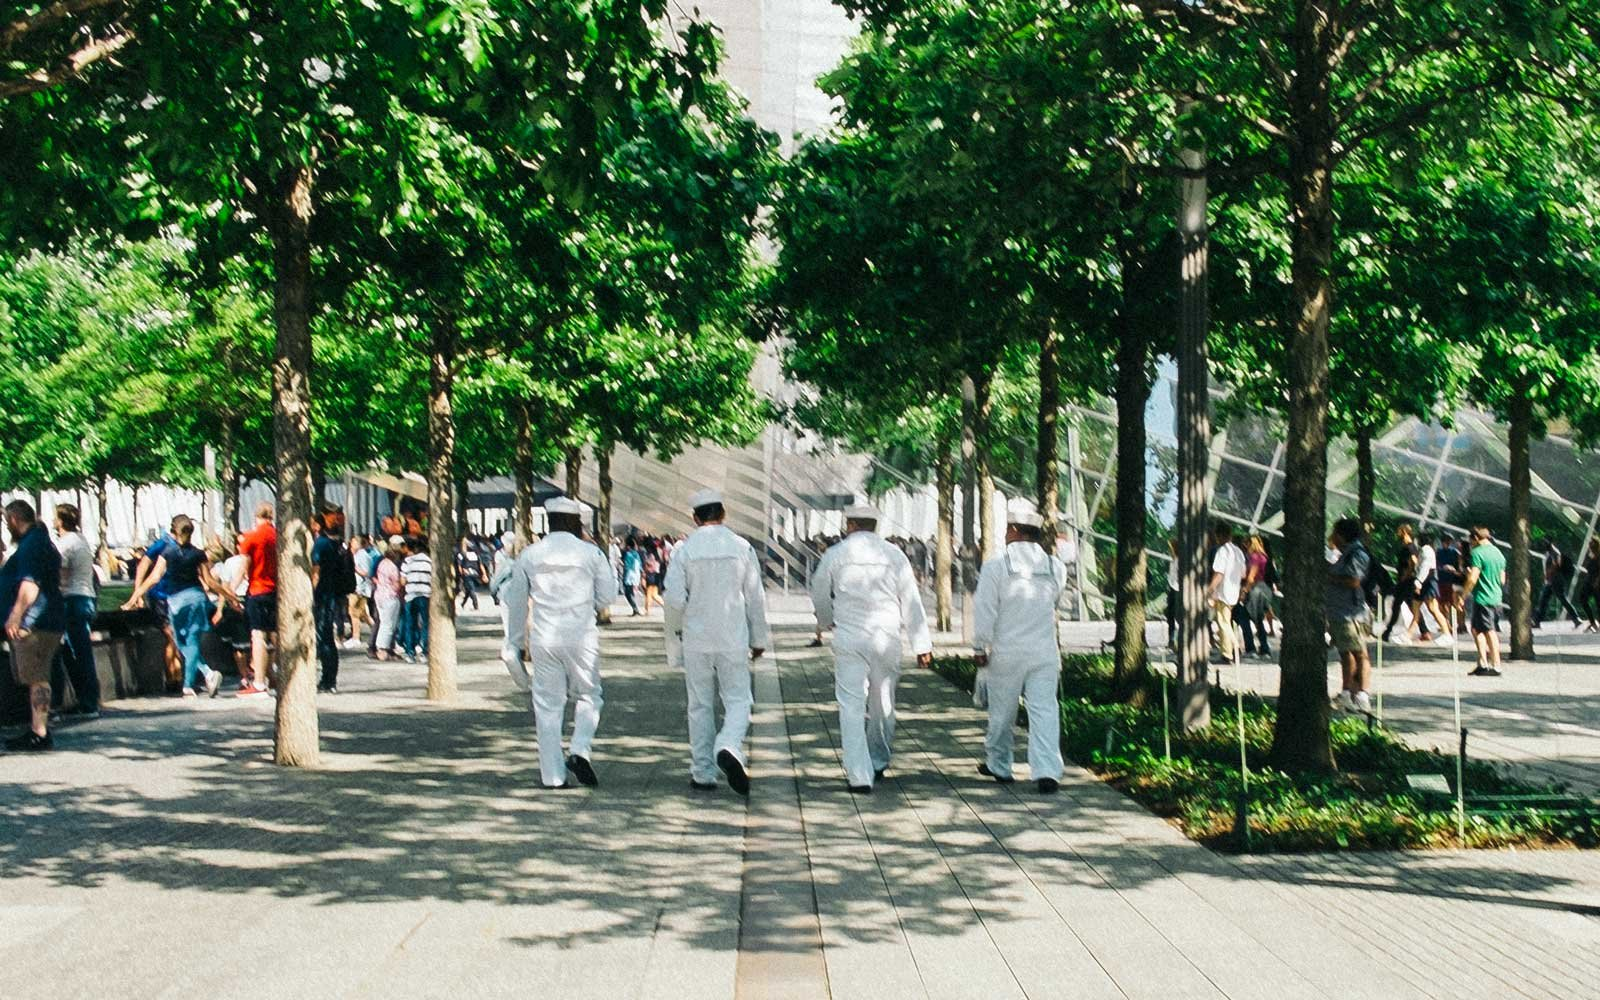 The 30th Annual Fleet Week in New York City